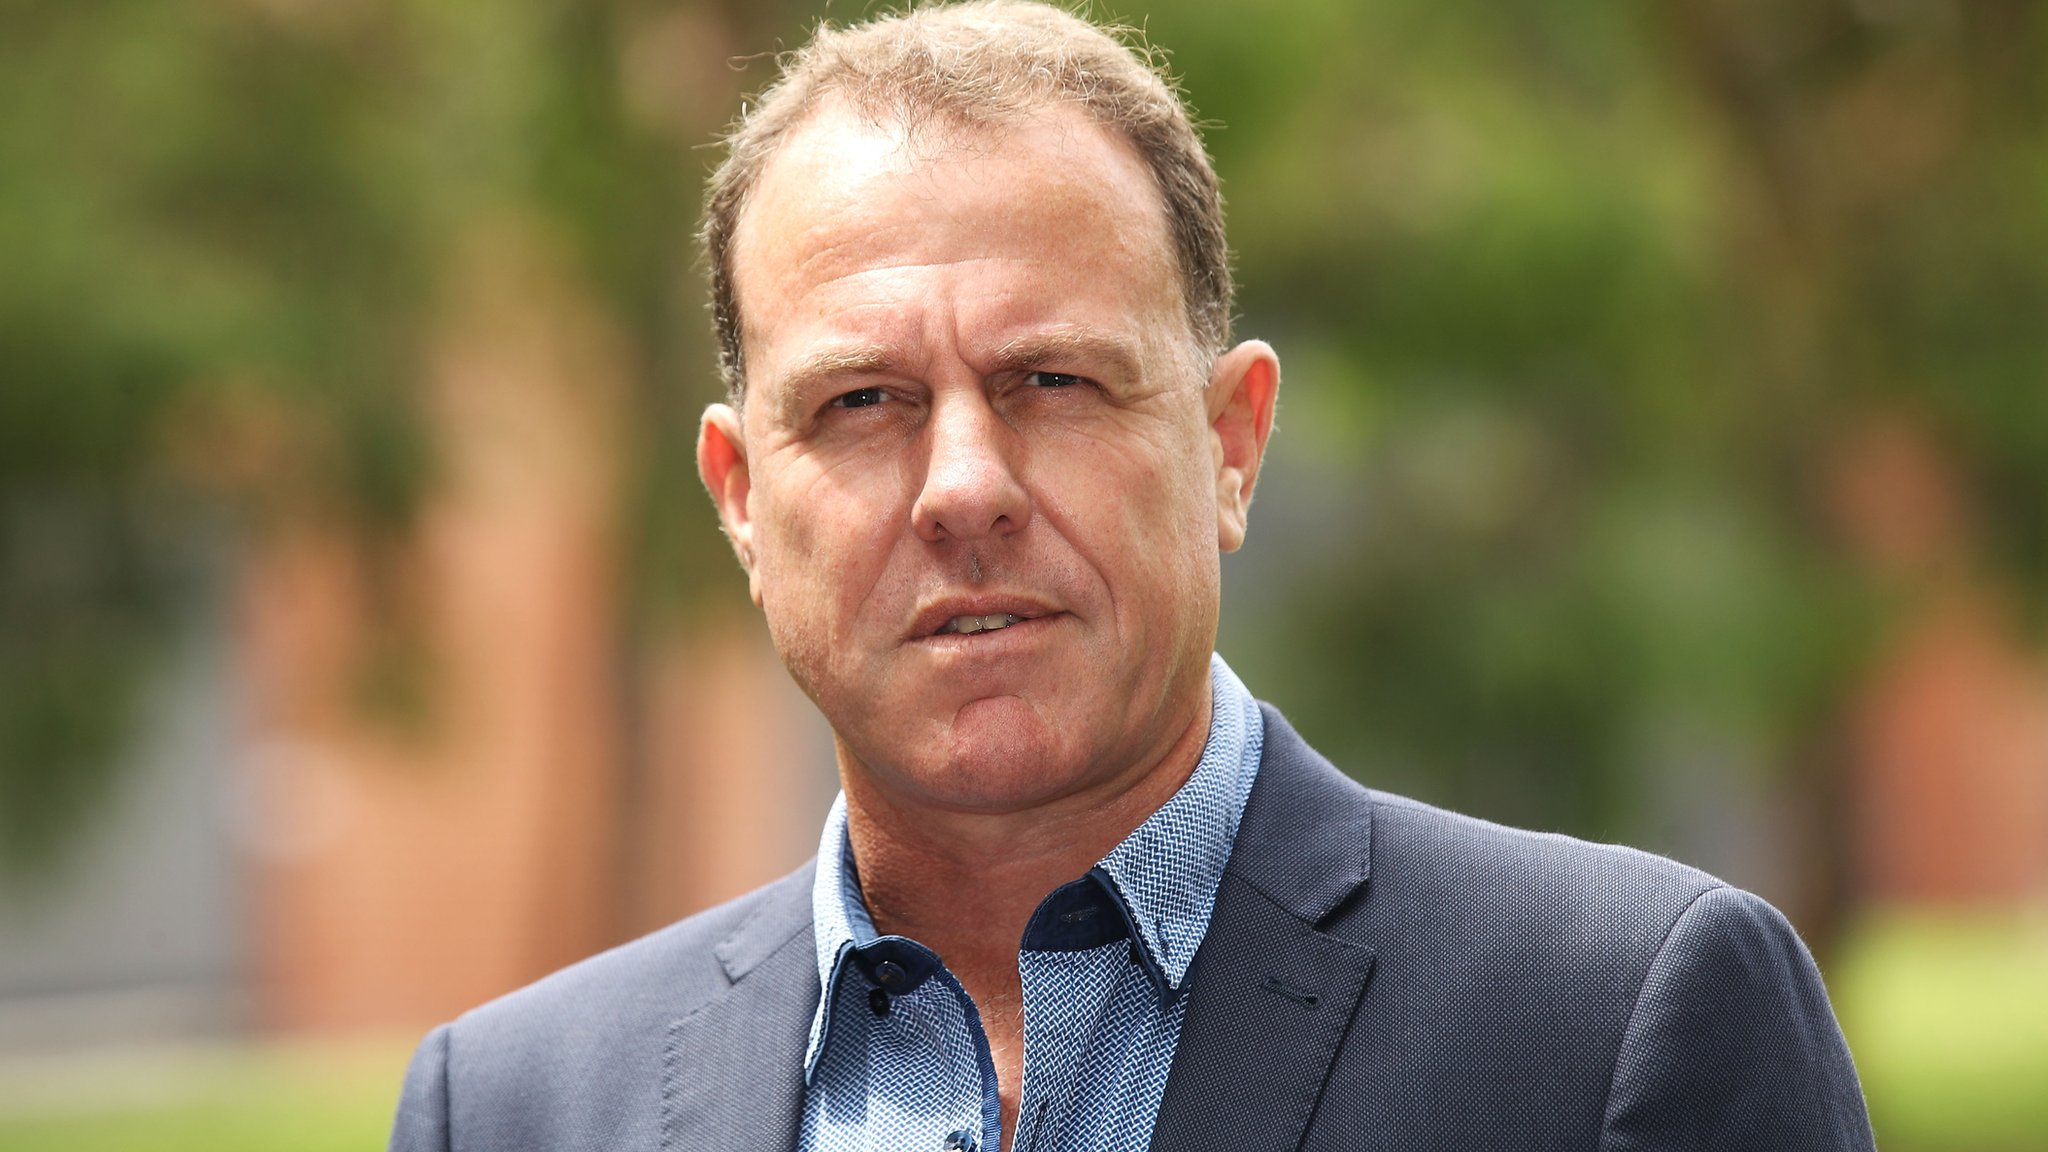 Australia women's coach Alen Stajcic sacked over 'unsatisfactory' team environment